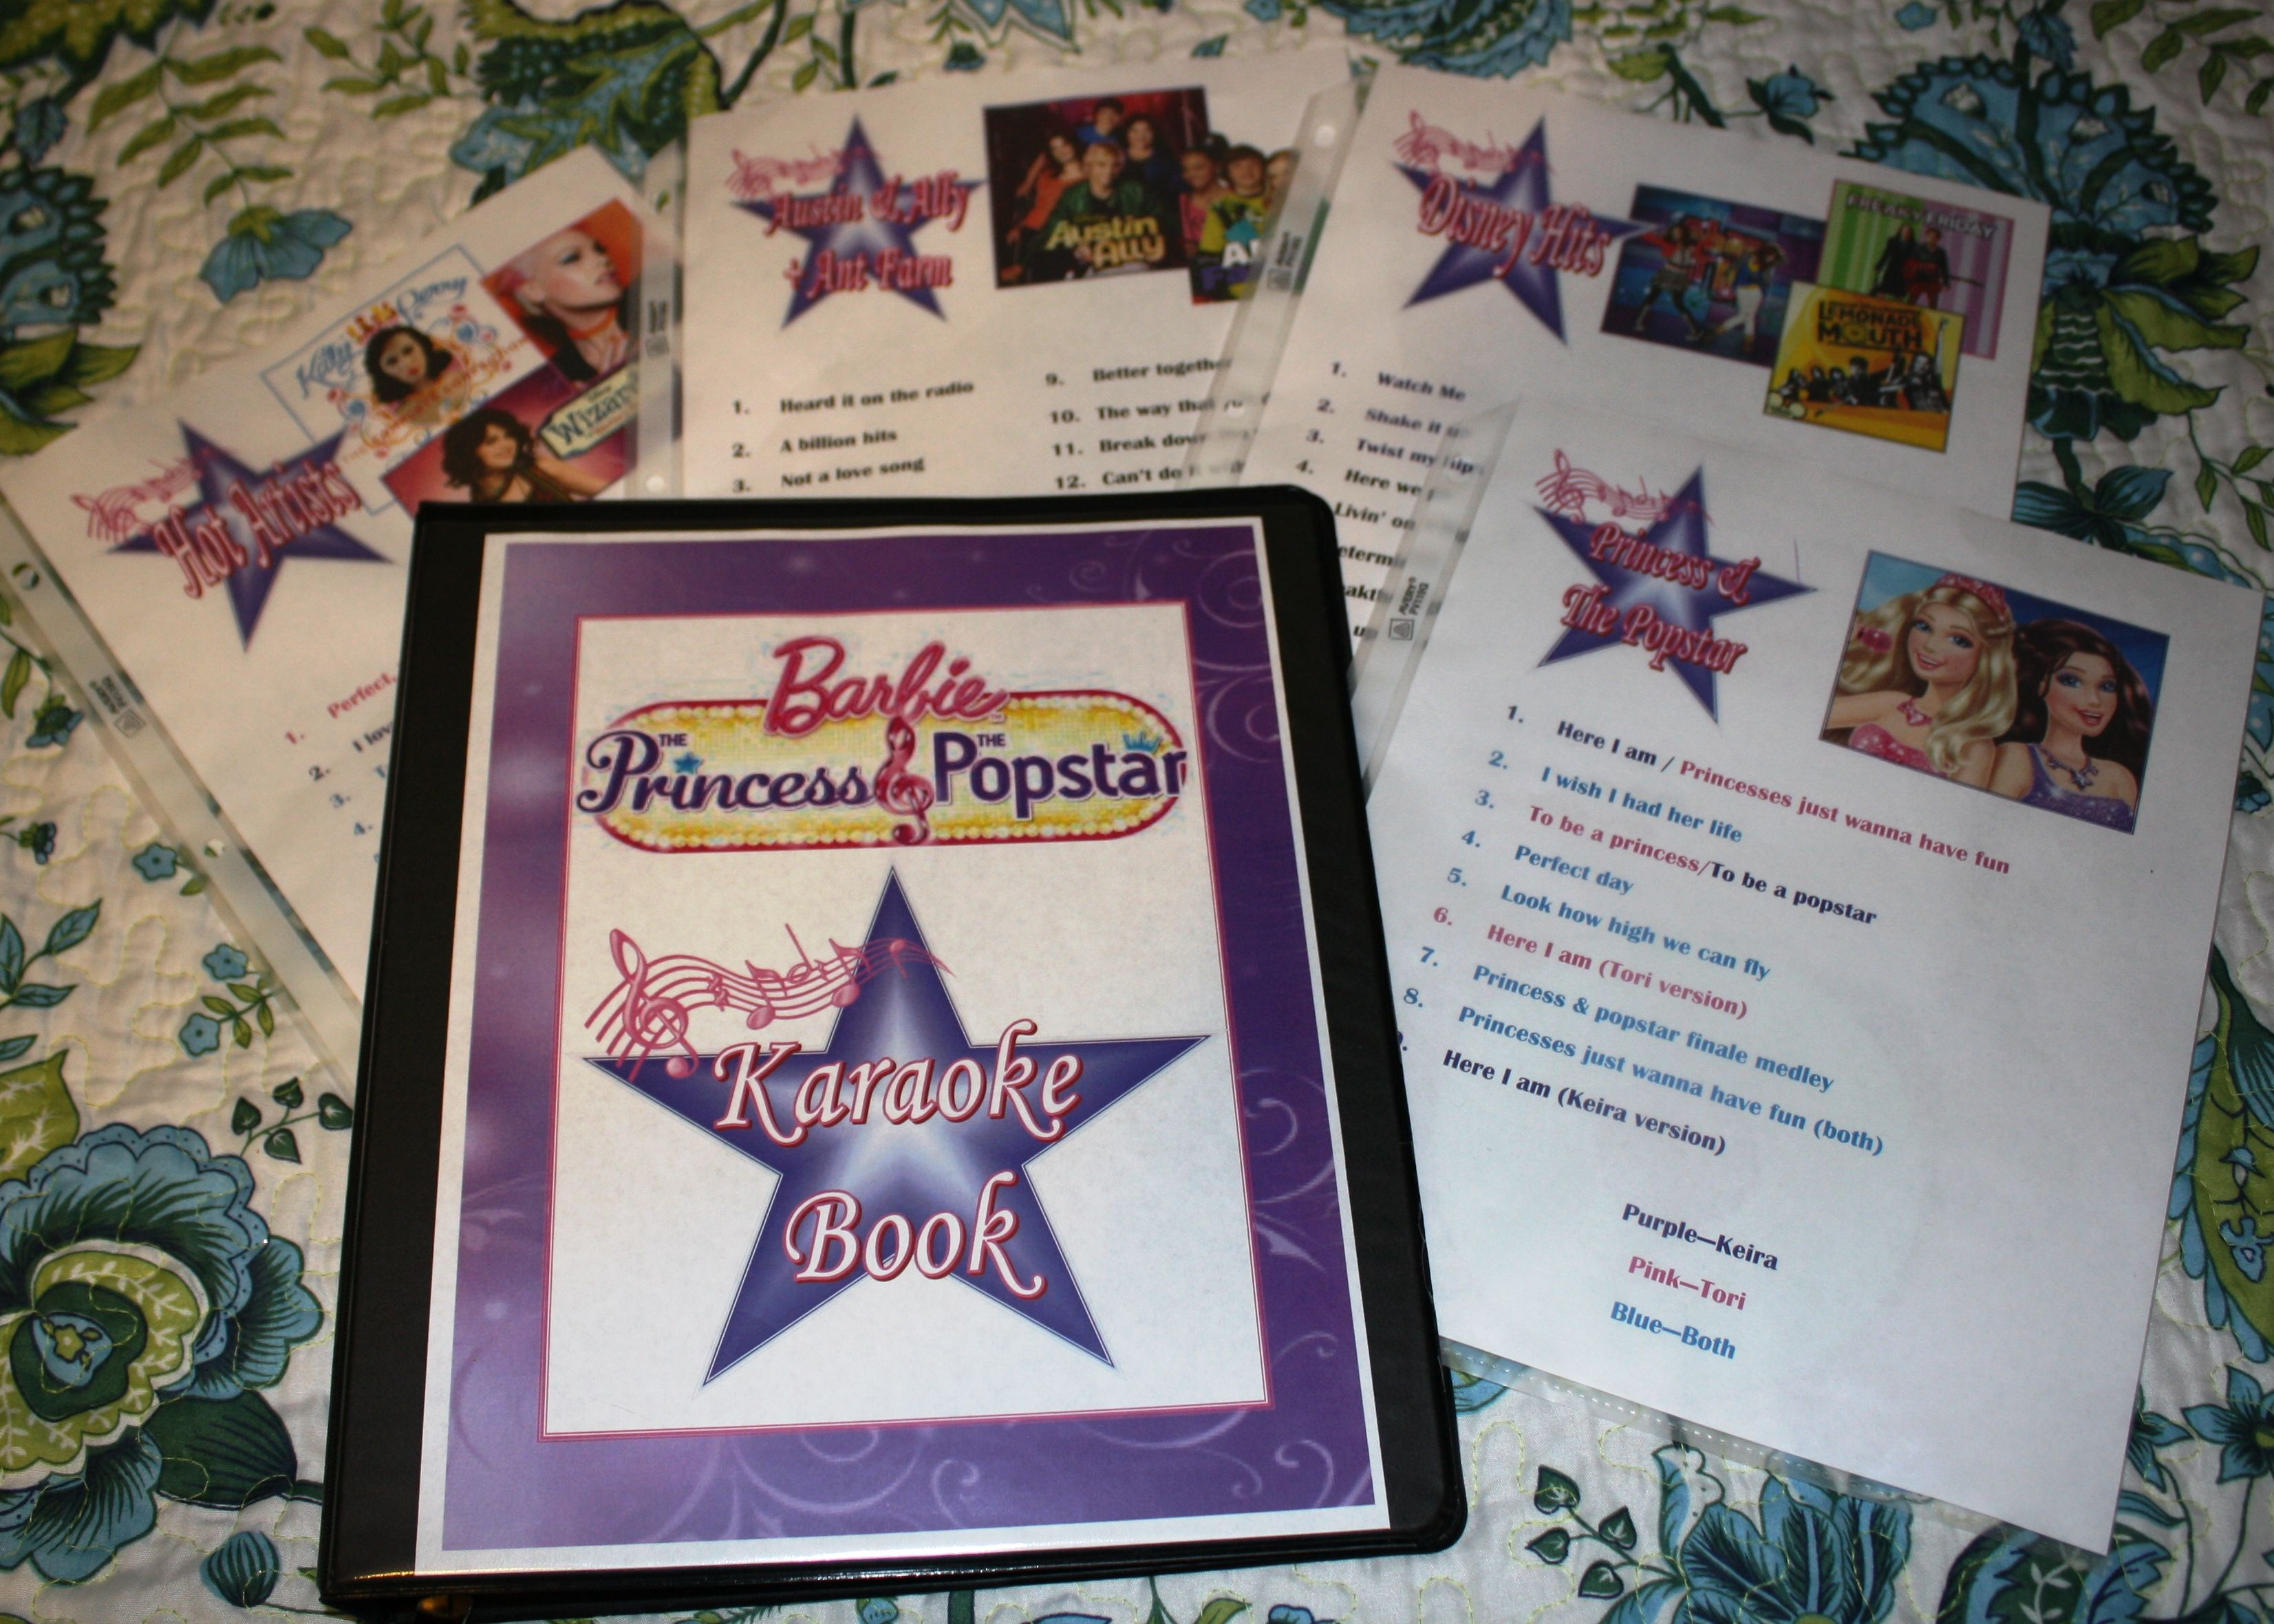 barbie princess and the popstar karaoke book for the party guests